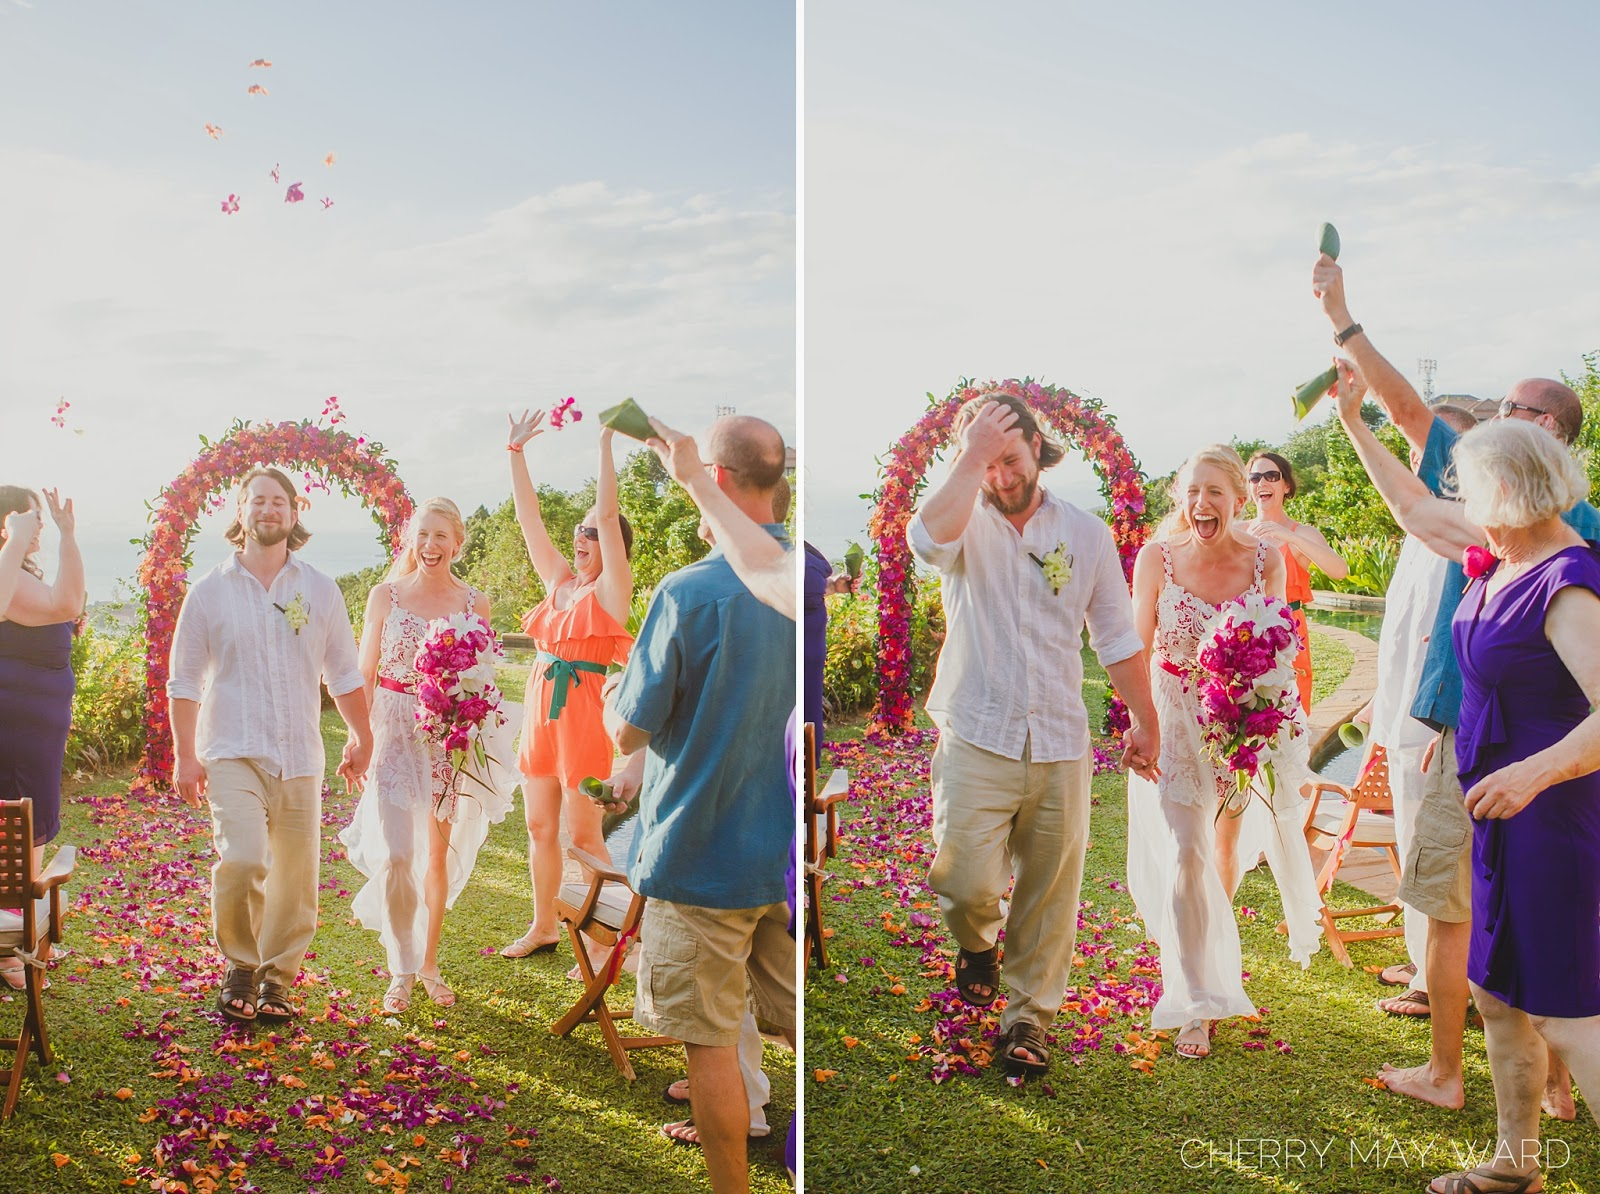 just married, throwing flower petals over the bride and groom, walking back up the aisle, happy, intimate destination wedding in Thailand, Cherry May Ward Photography